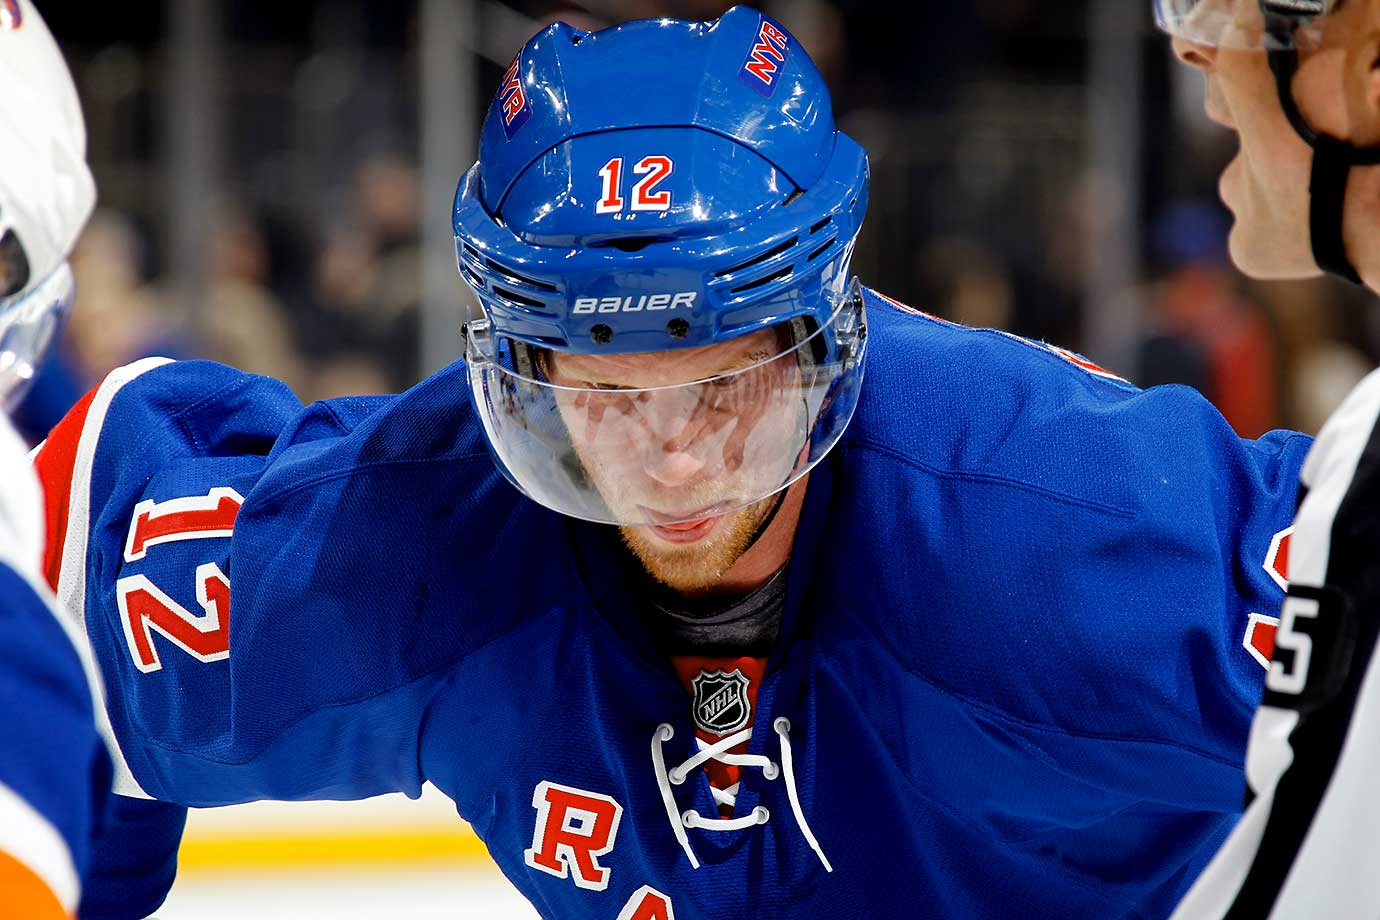 A reflection sits on the mask of Eric Staal of the New York Rangers during a face-off against the New York Islanders.